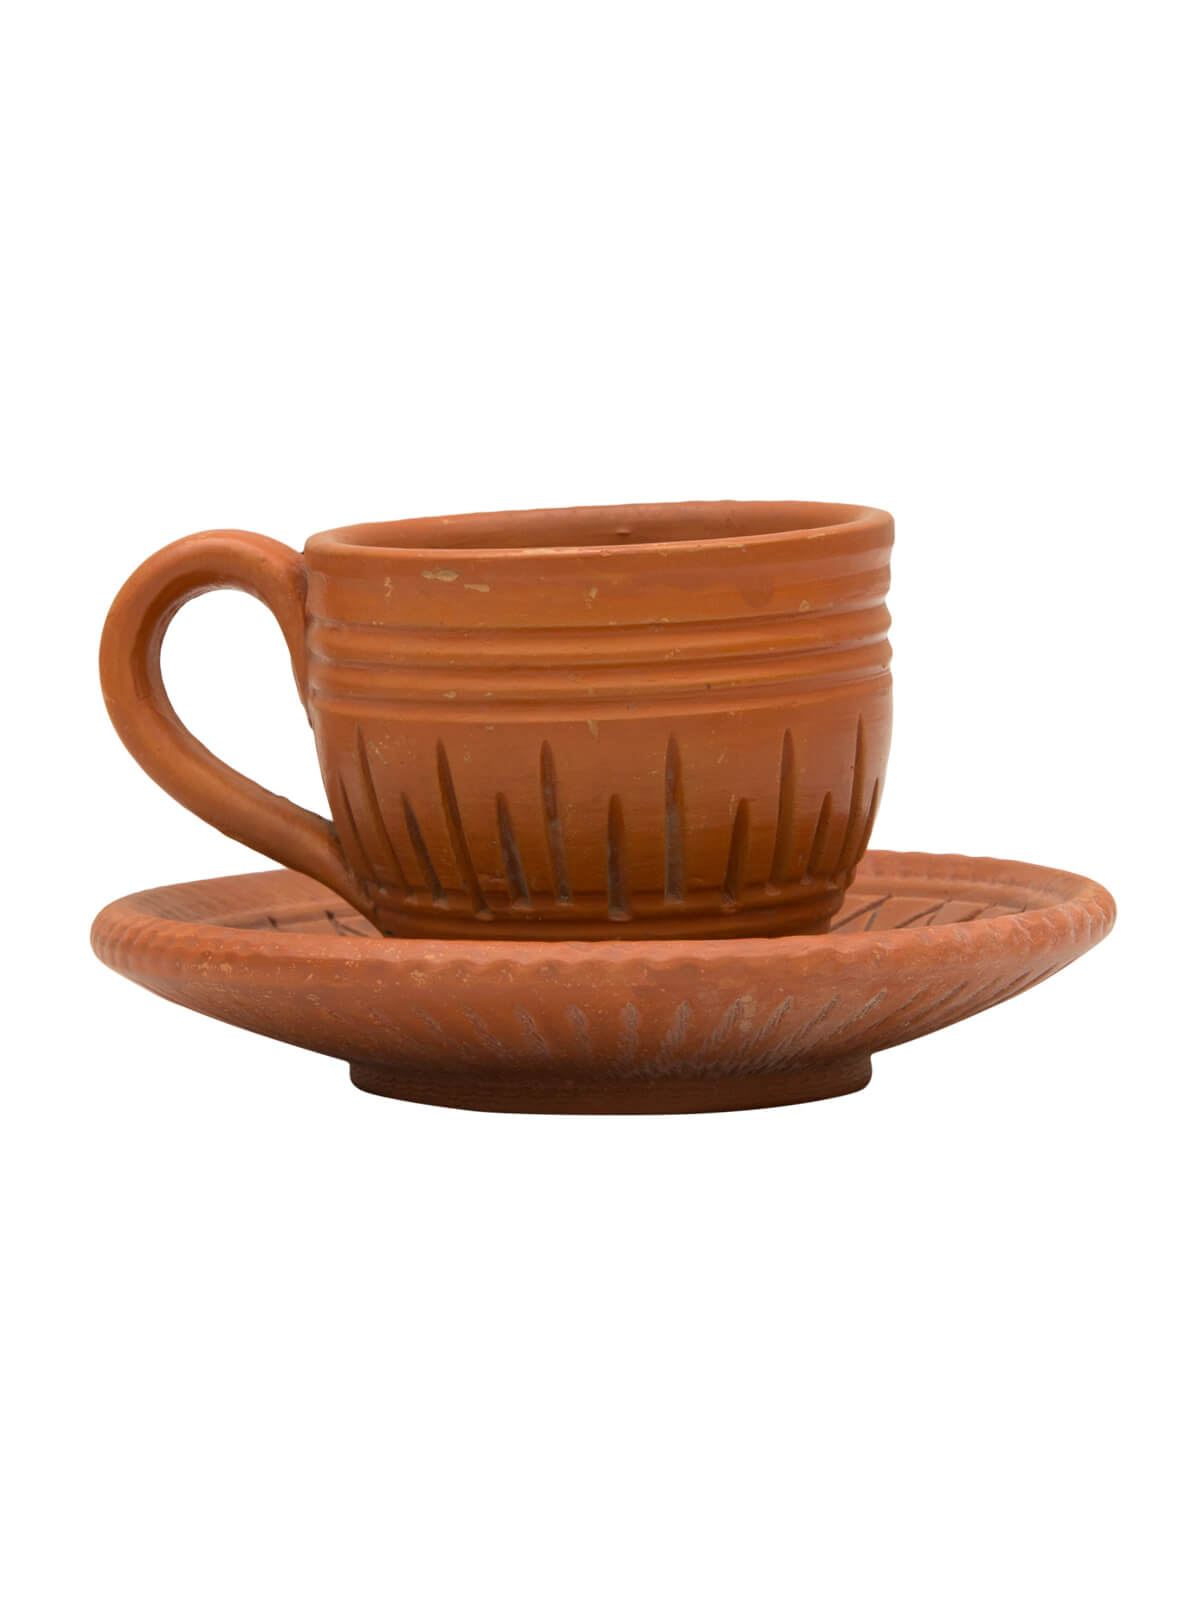 Eco-friendly Handmade Clay Cup and Saucer with Fine Terracotta Polish